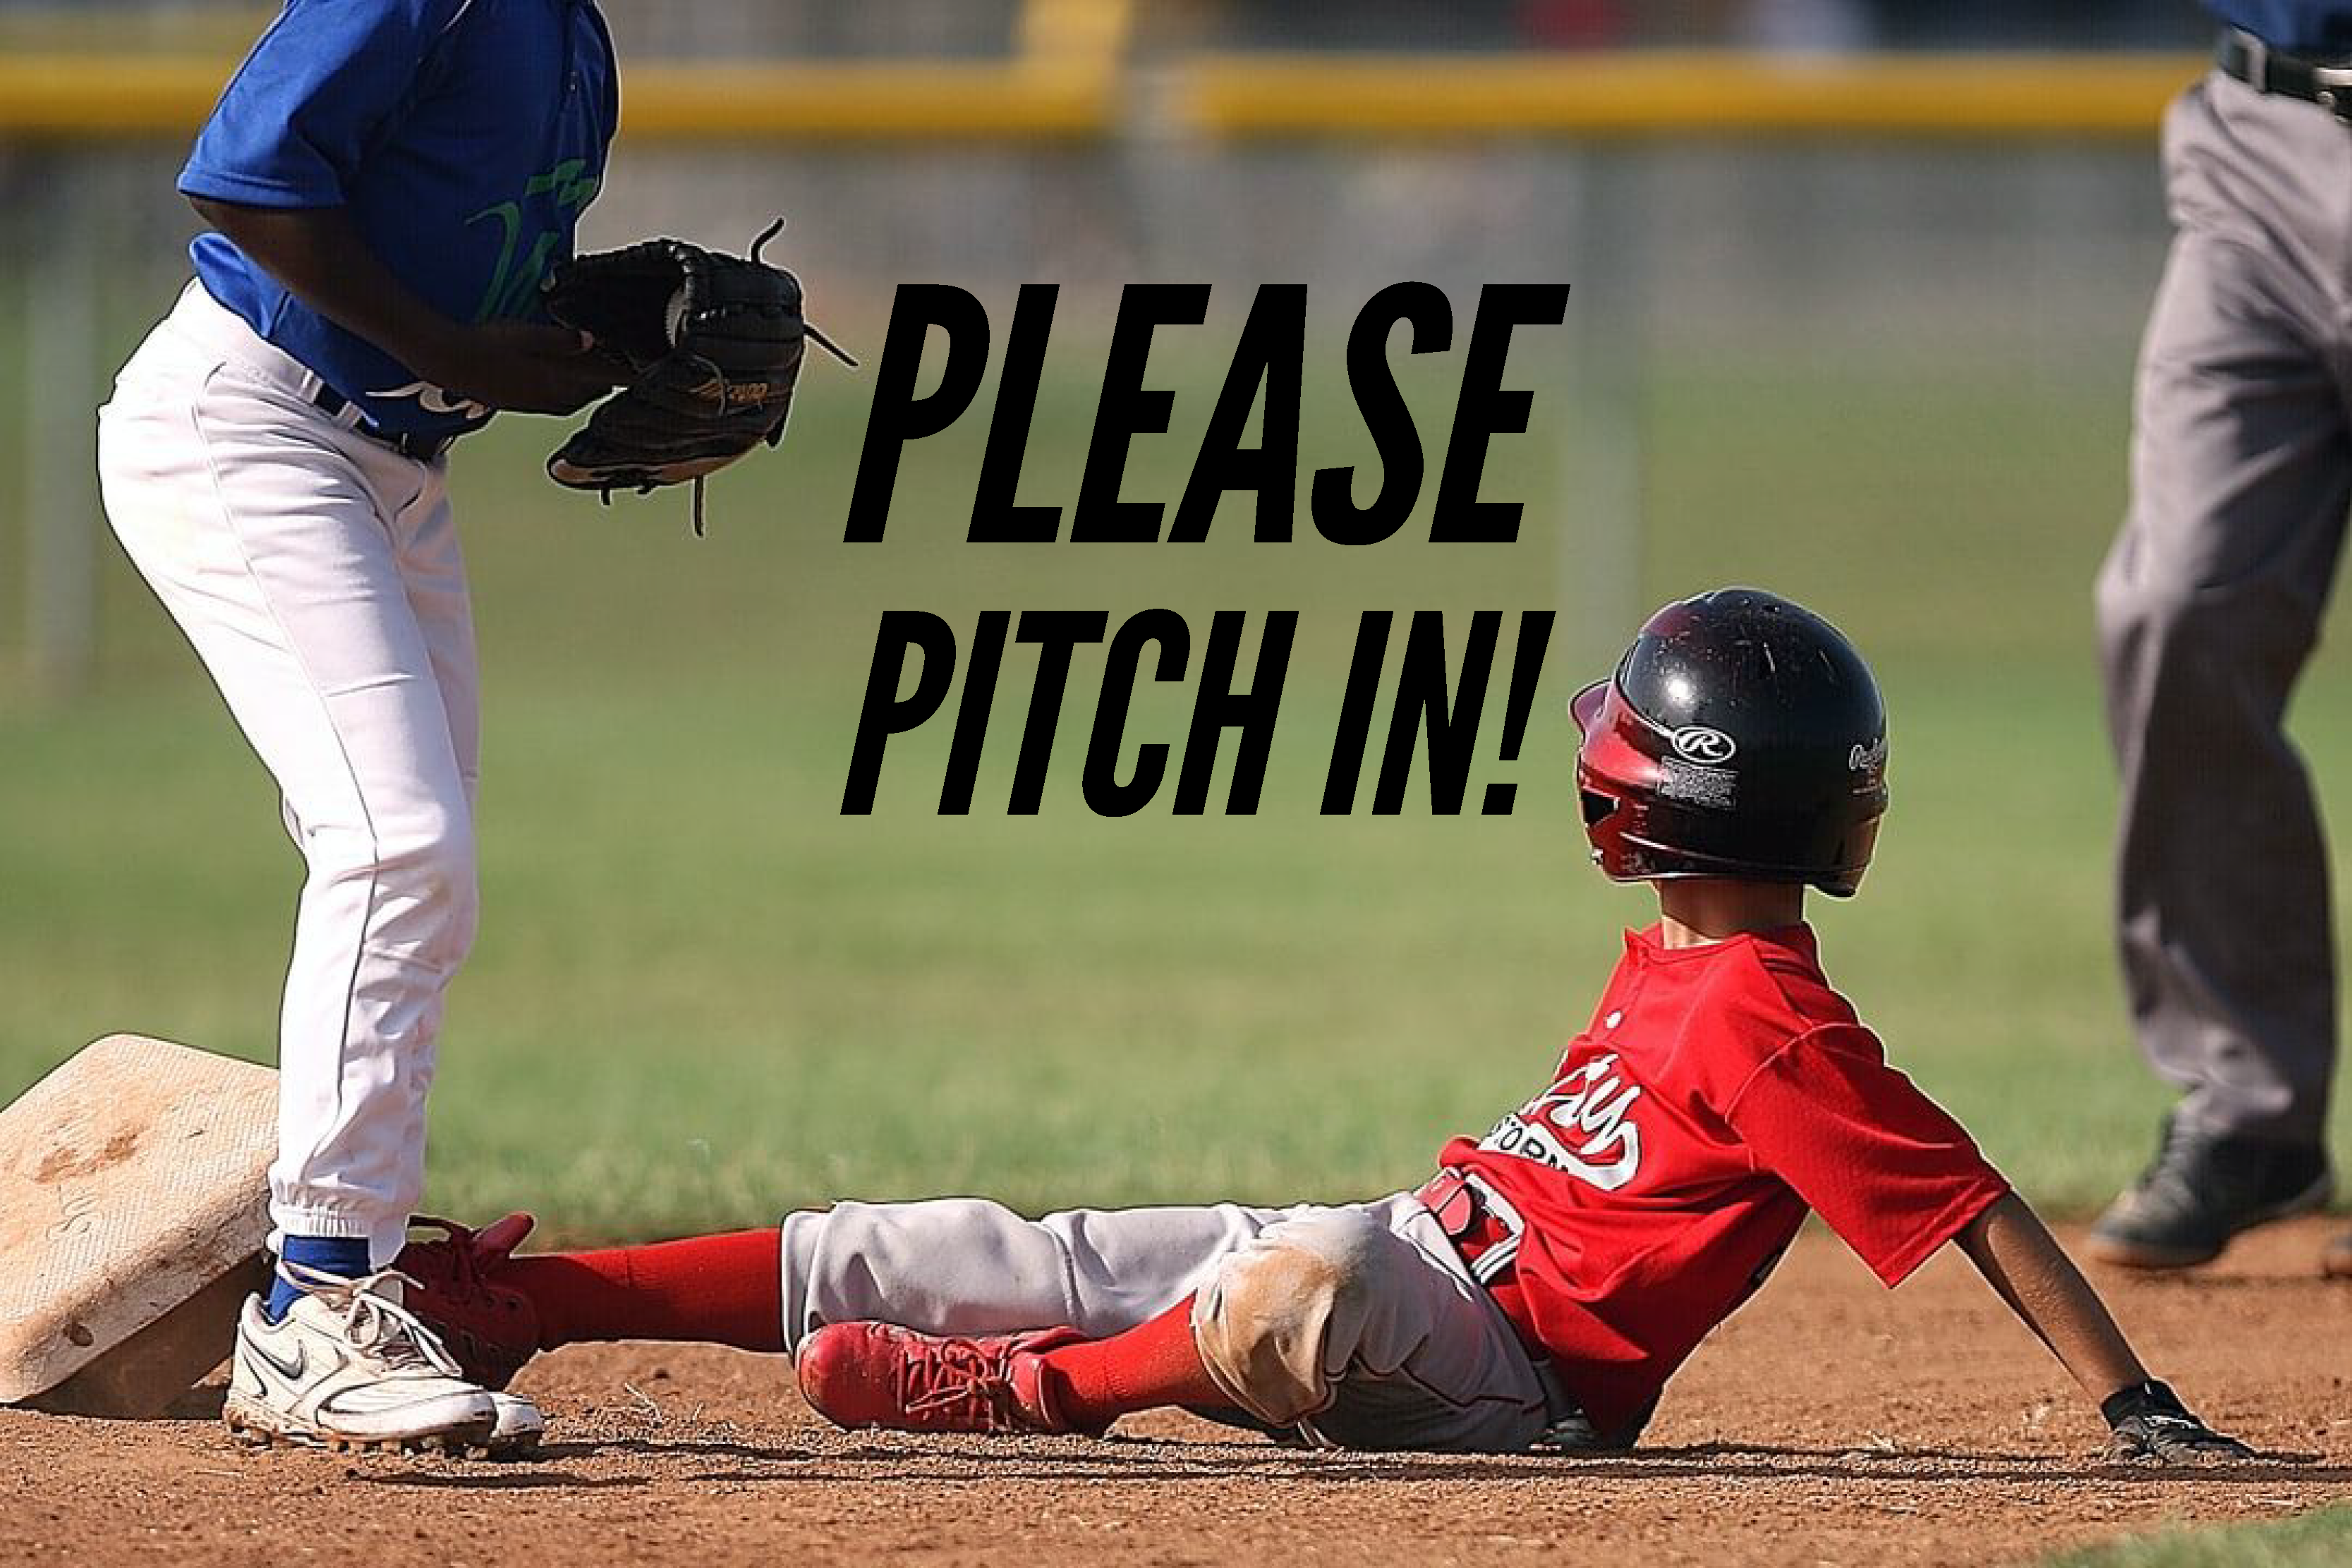 Please Pitch In!